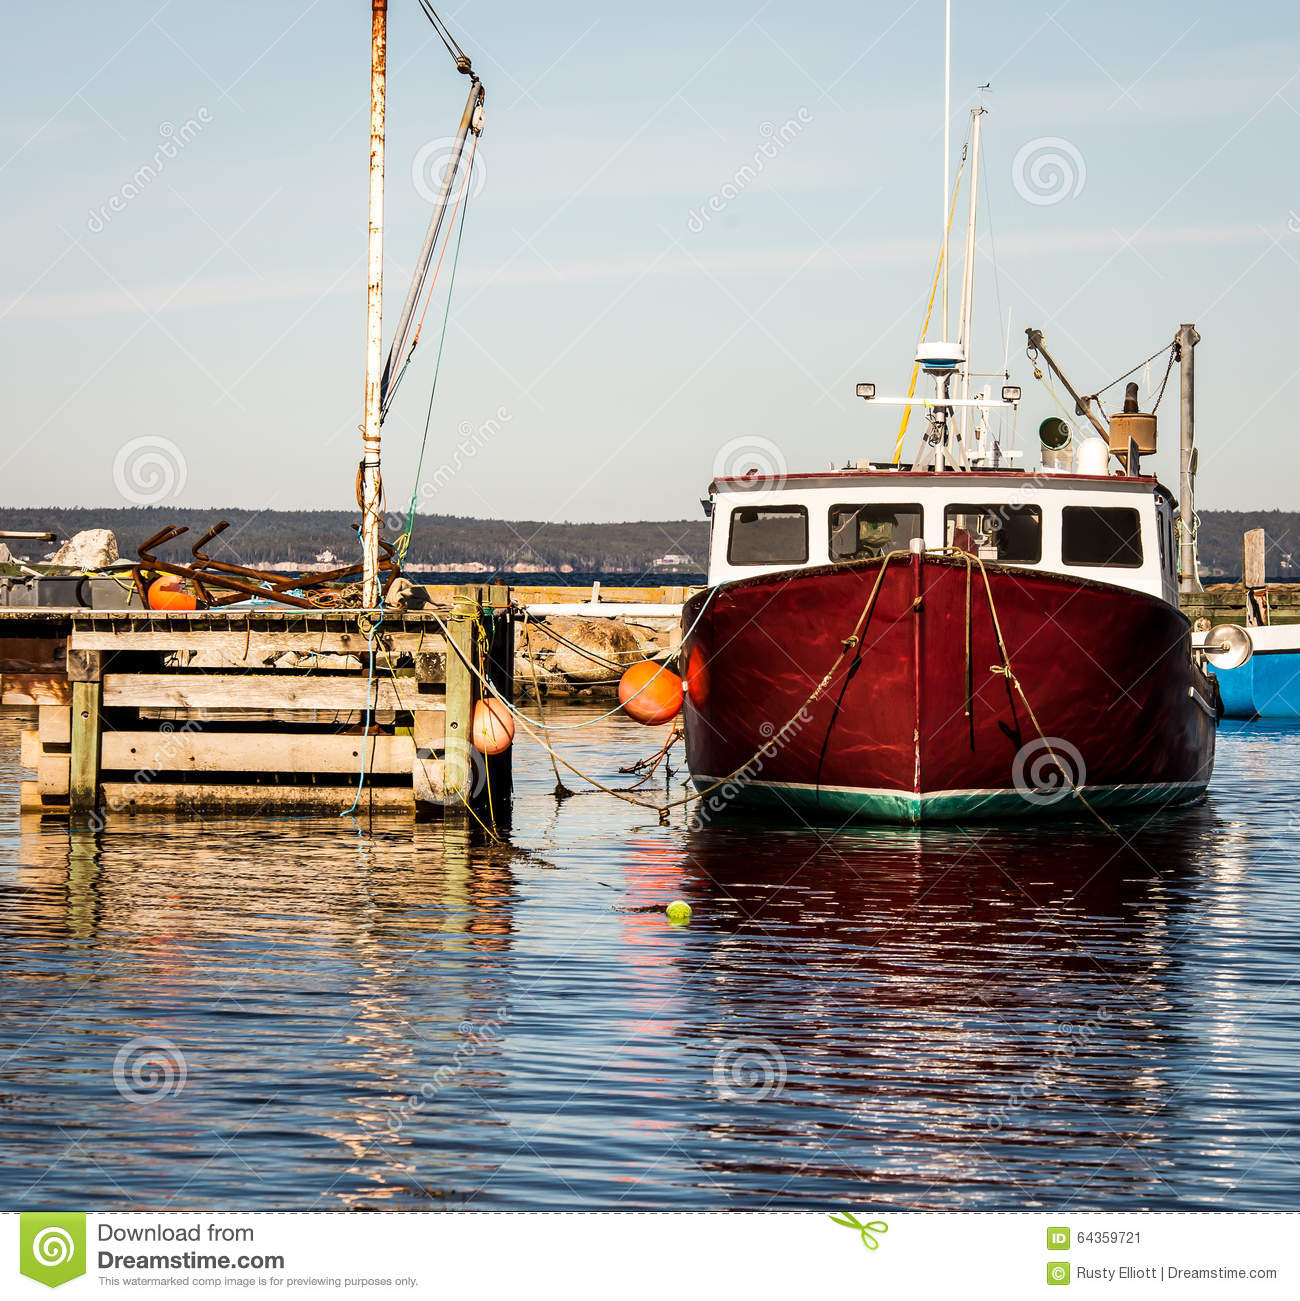 Lobster Fishing Boat Stock Photo - Image: 64359721